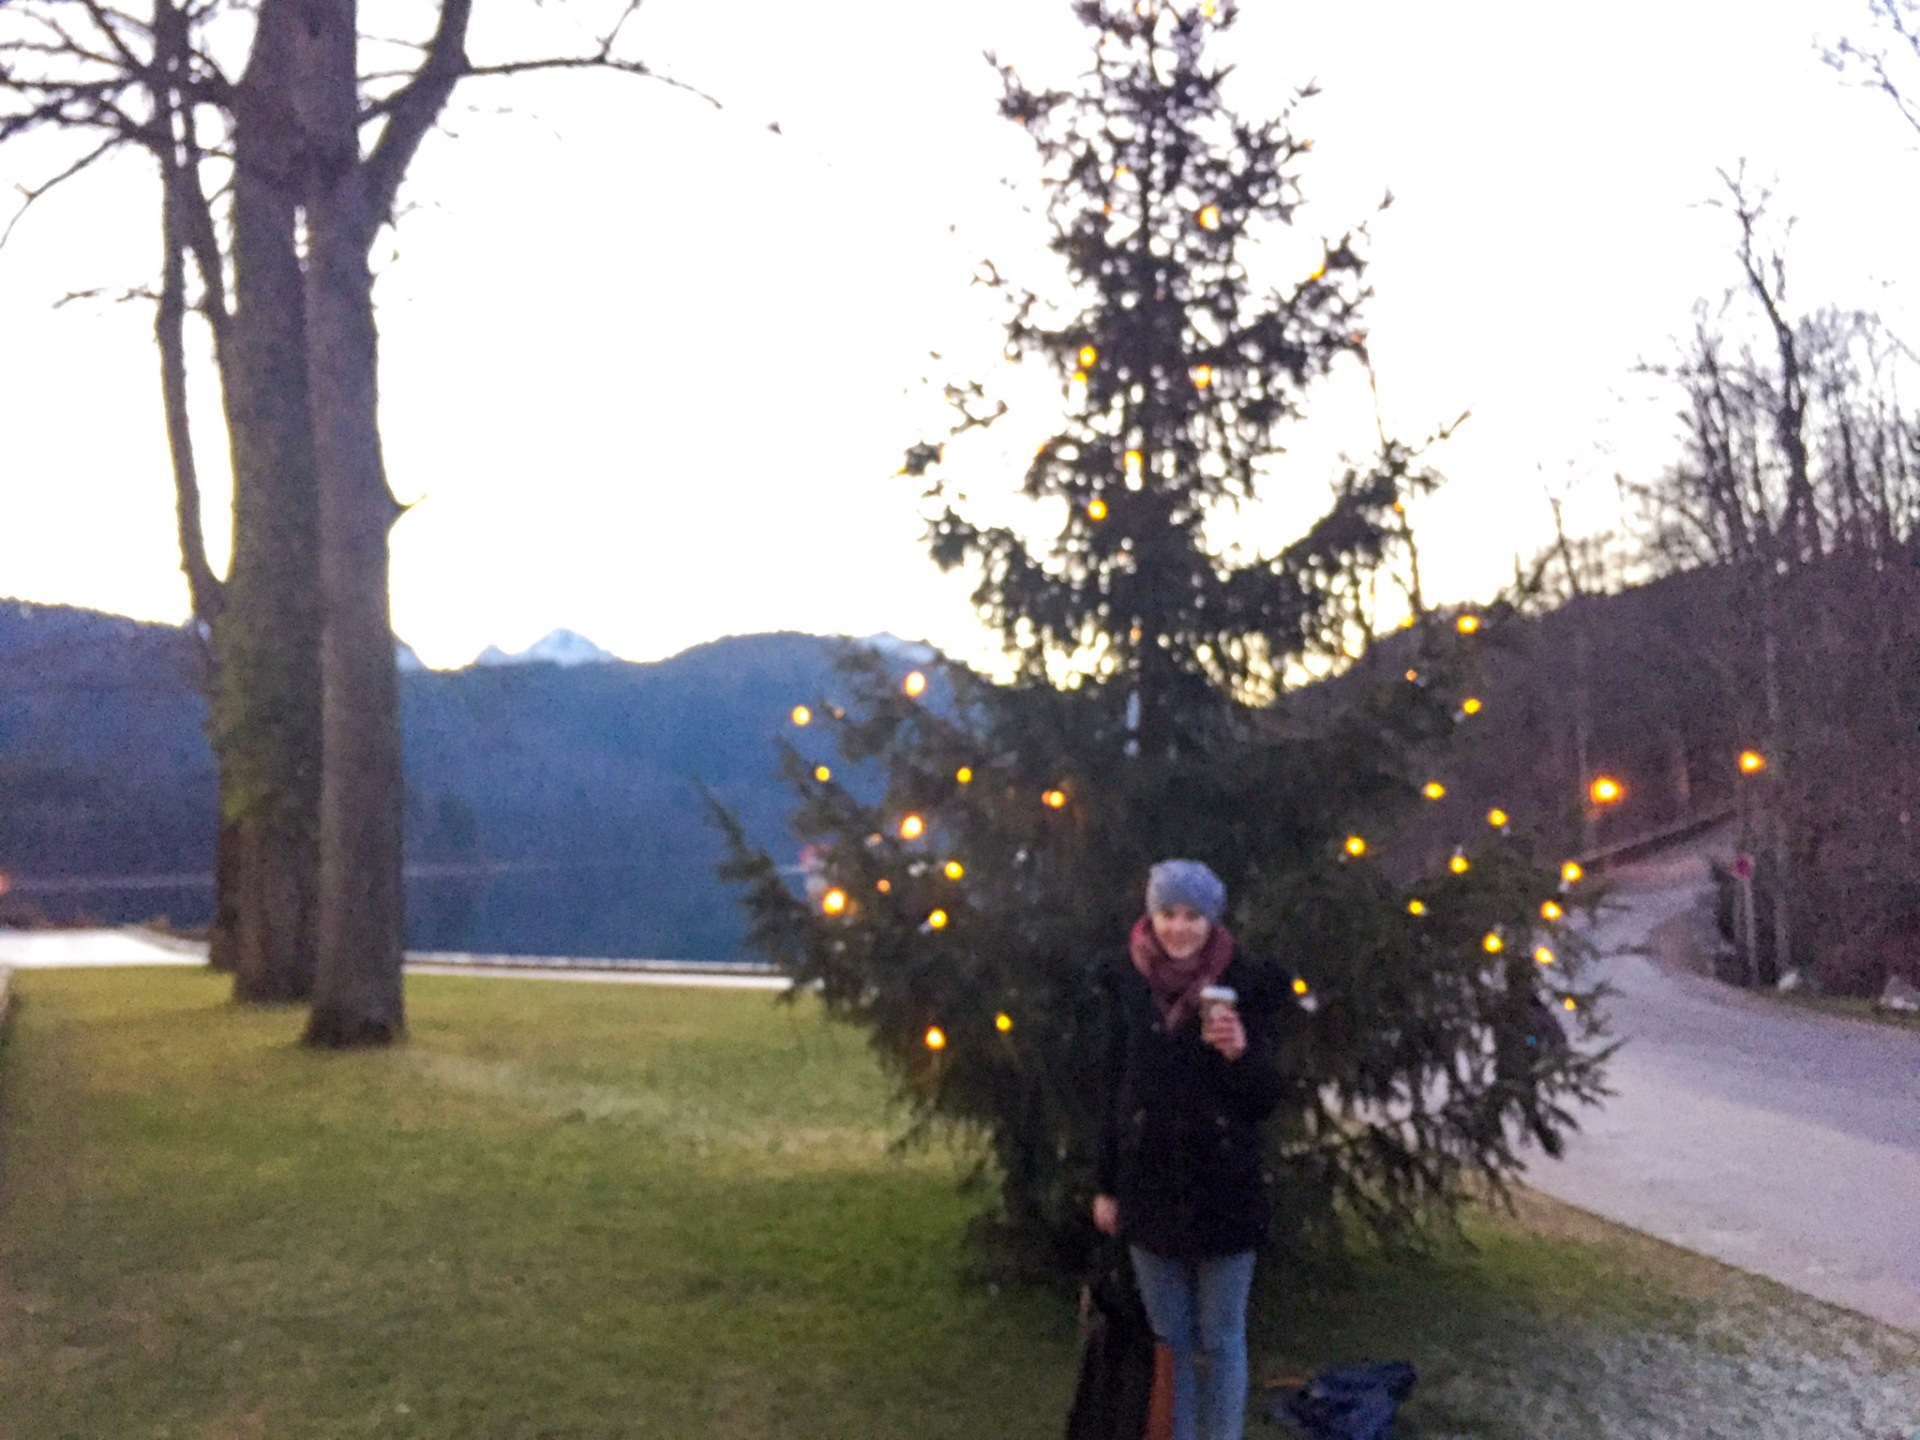 Sunset and a Christmas tree in Bavaria